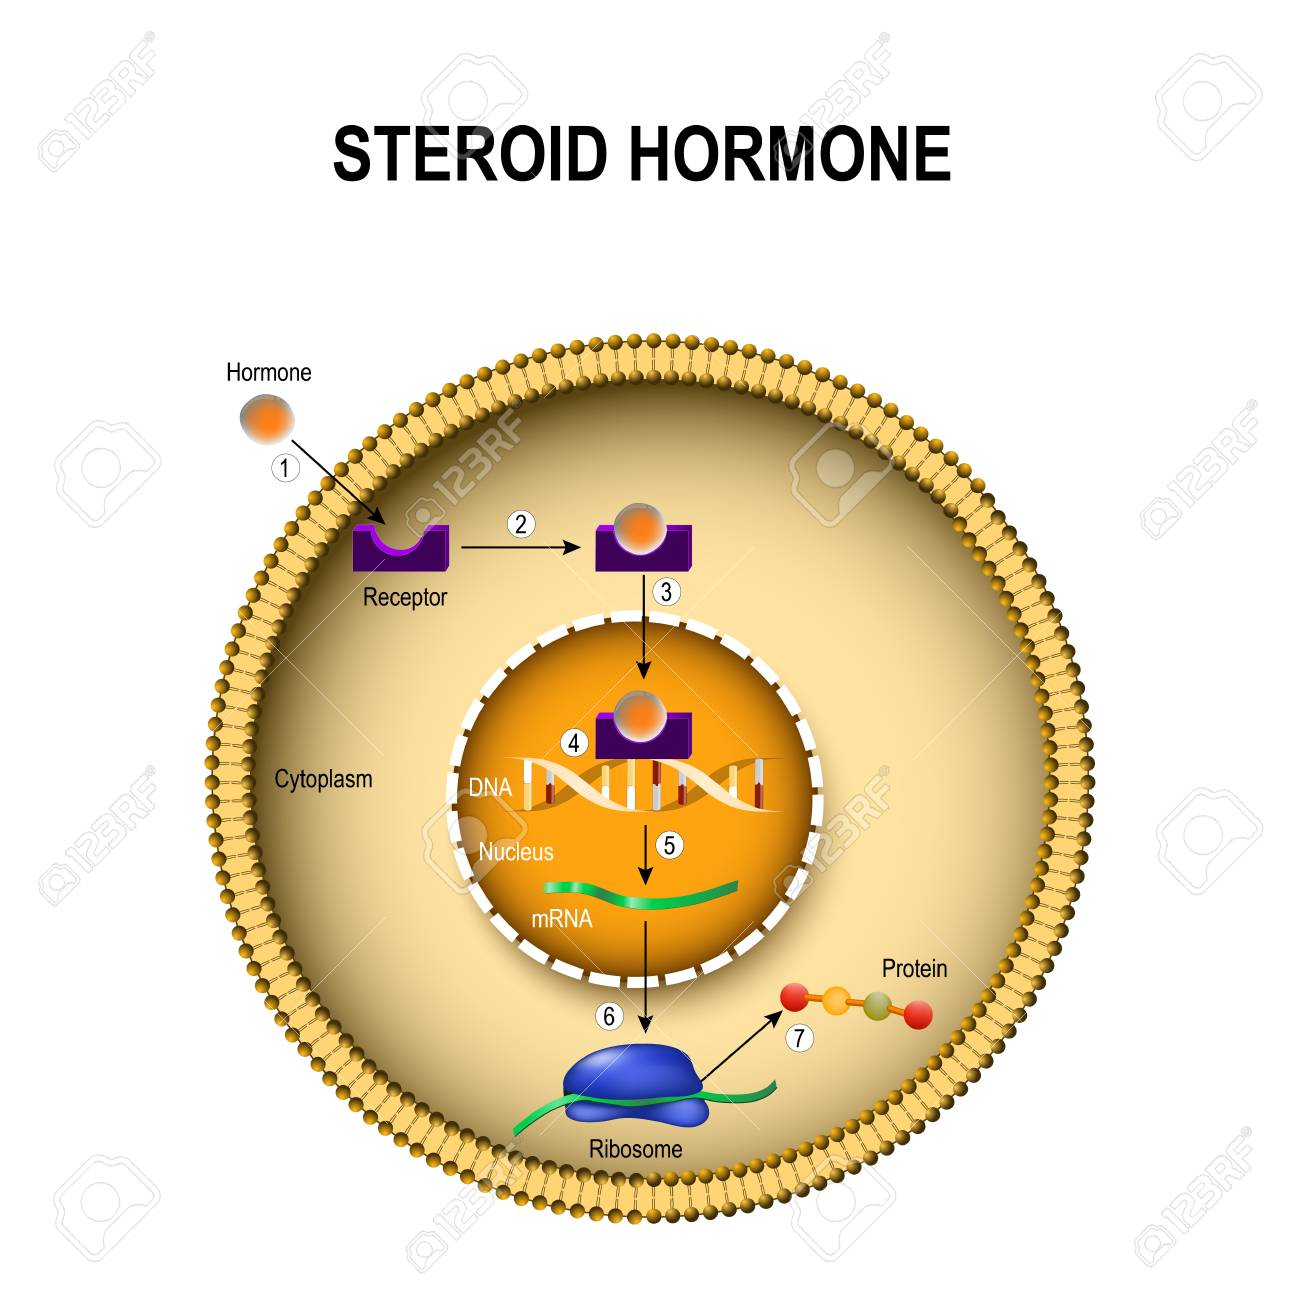 How steroid hormones work. interaction of the hormone with the intracellular receptor. Human endocrine signaling system - 94877768